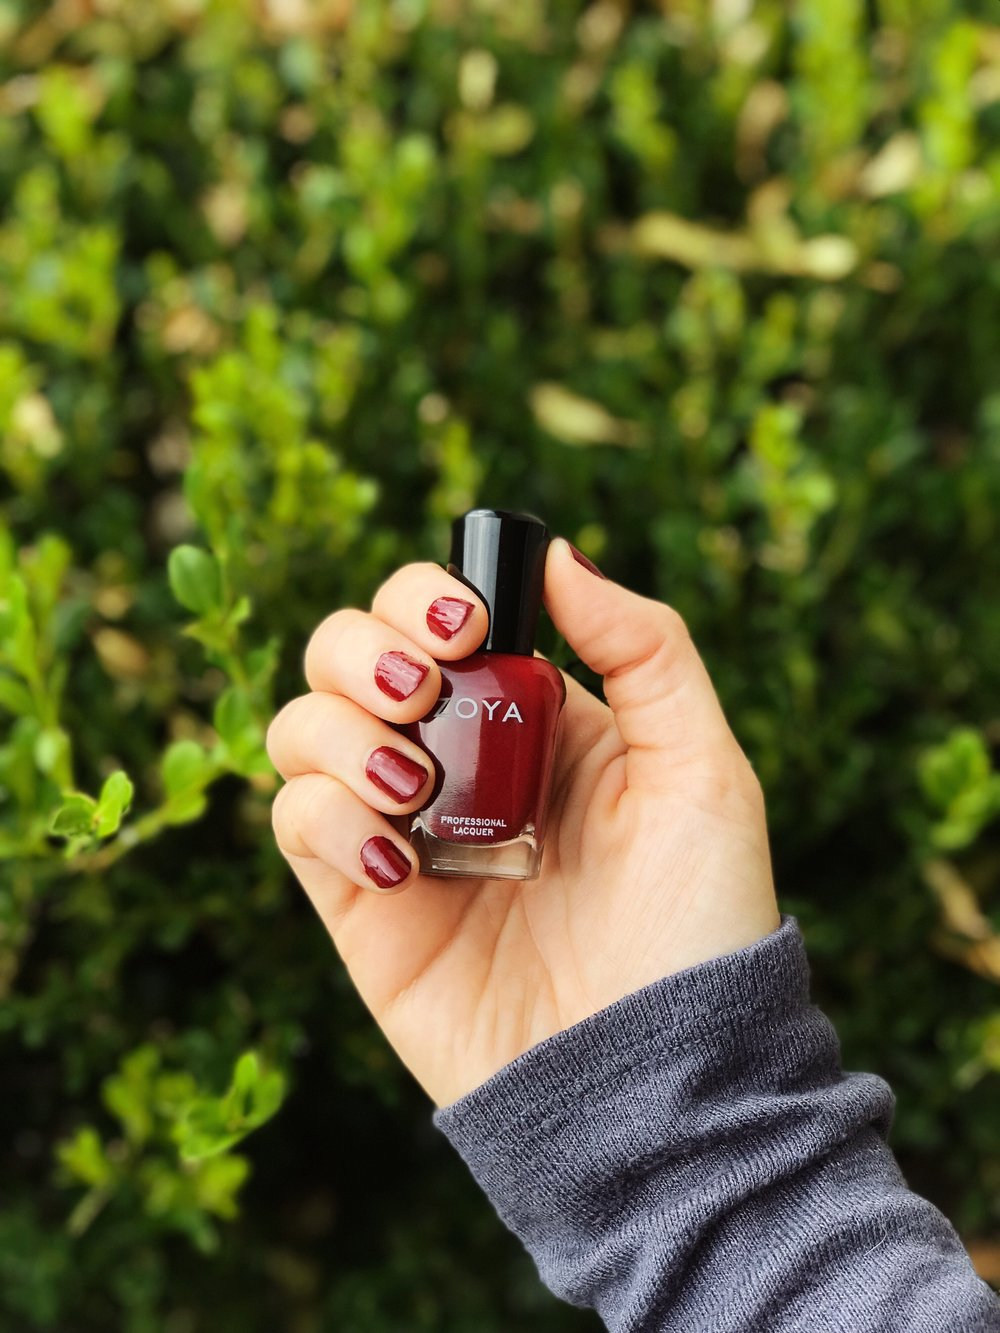 Zoya Blood Red Fall Polishes 10 Free | MALLORIE OWENS